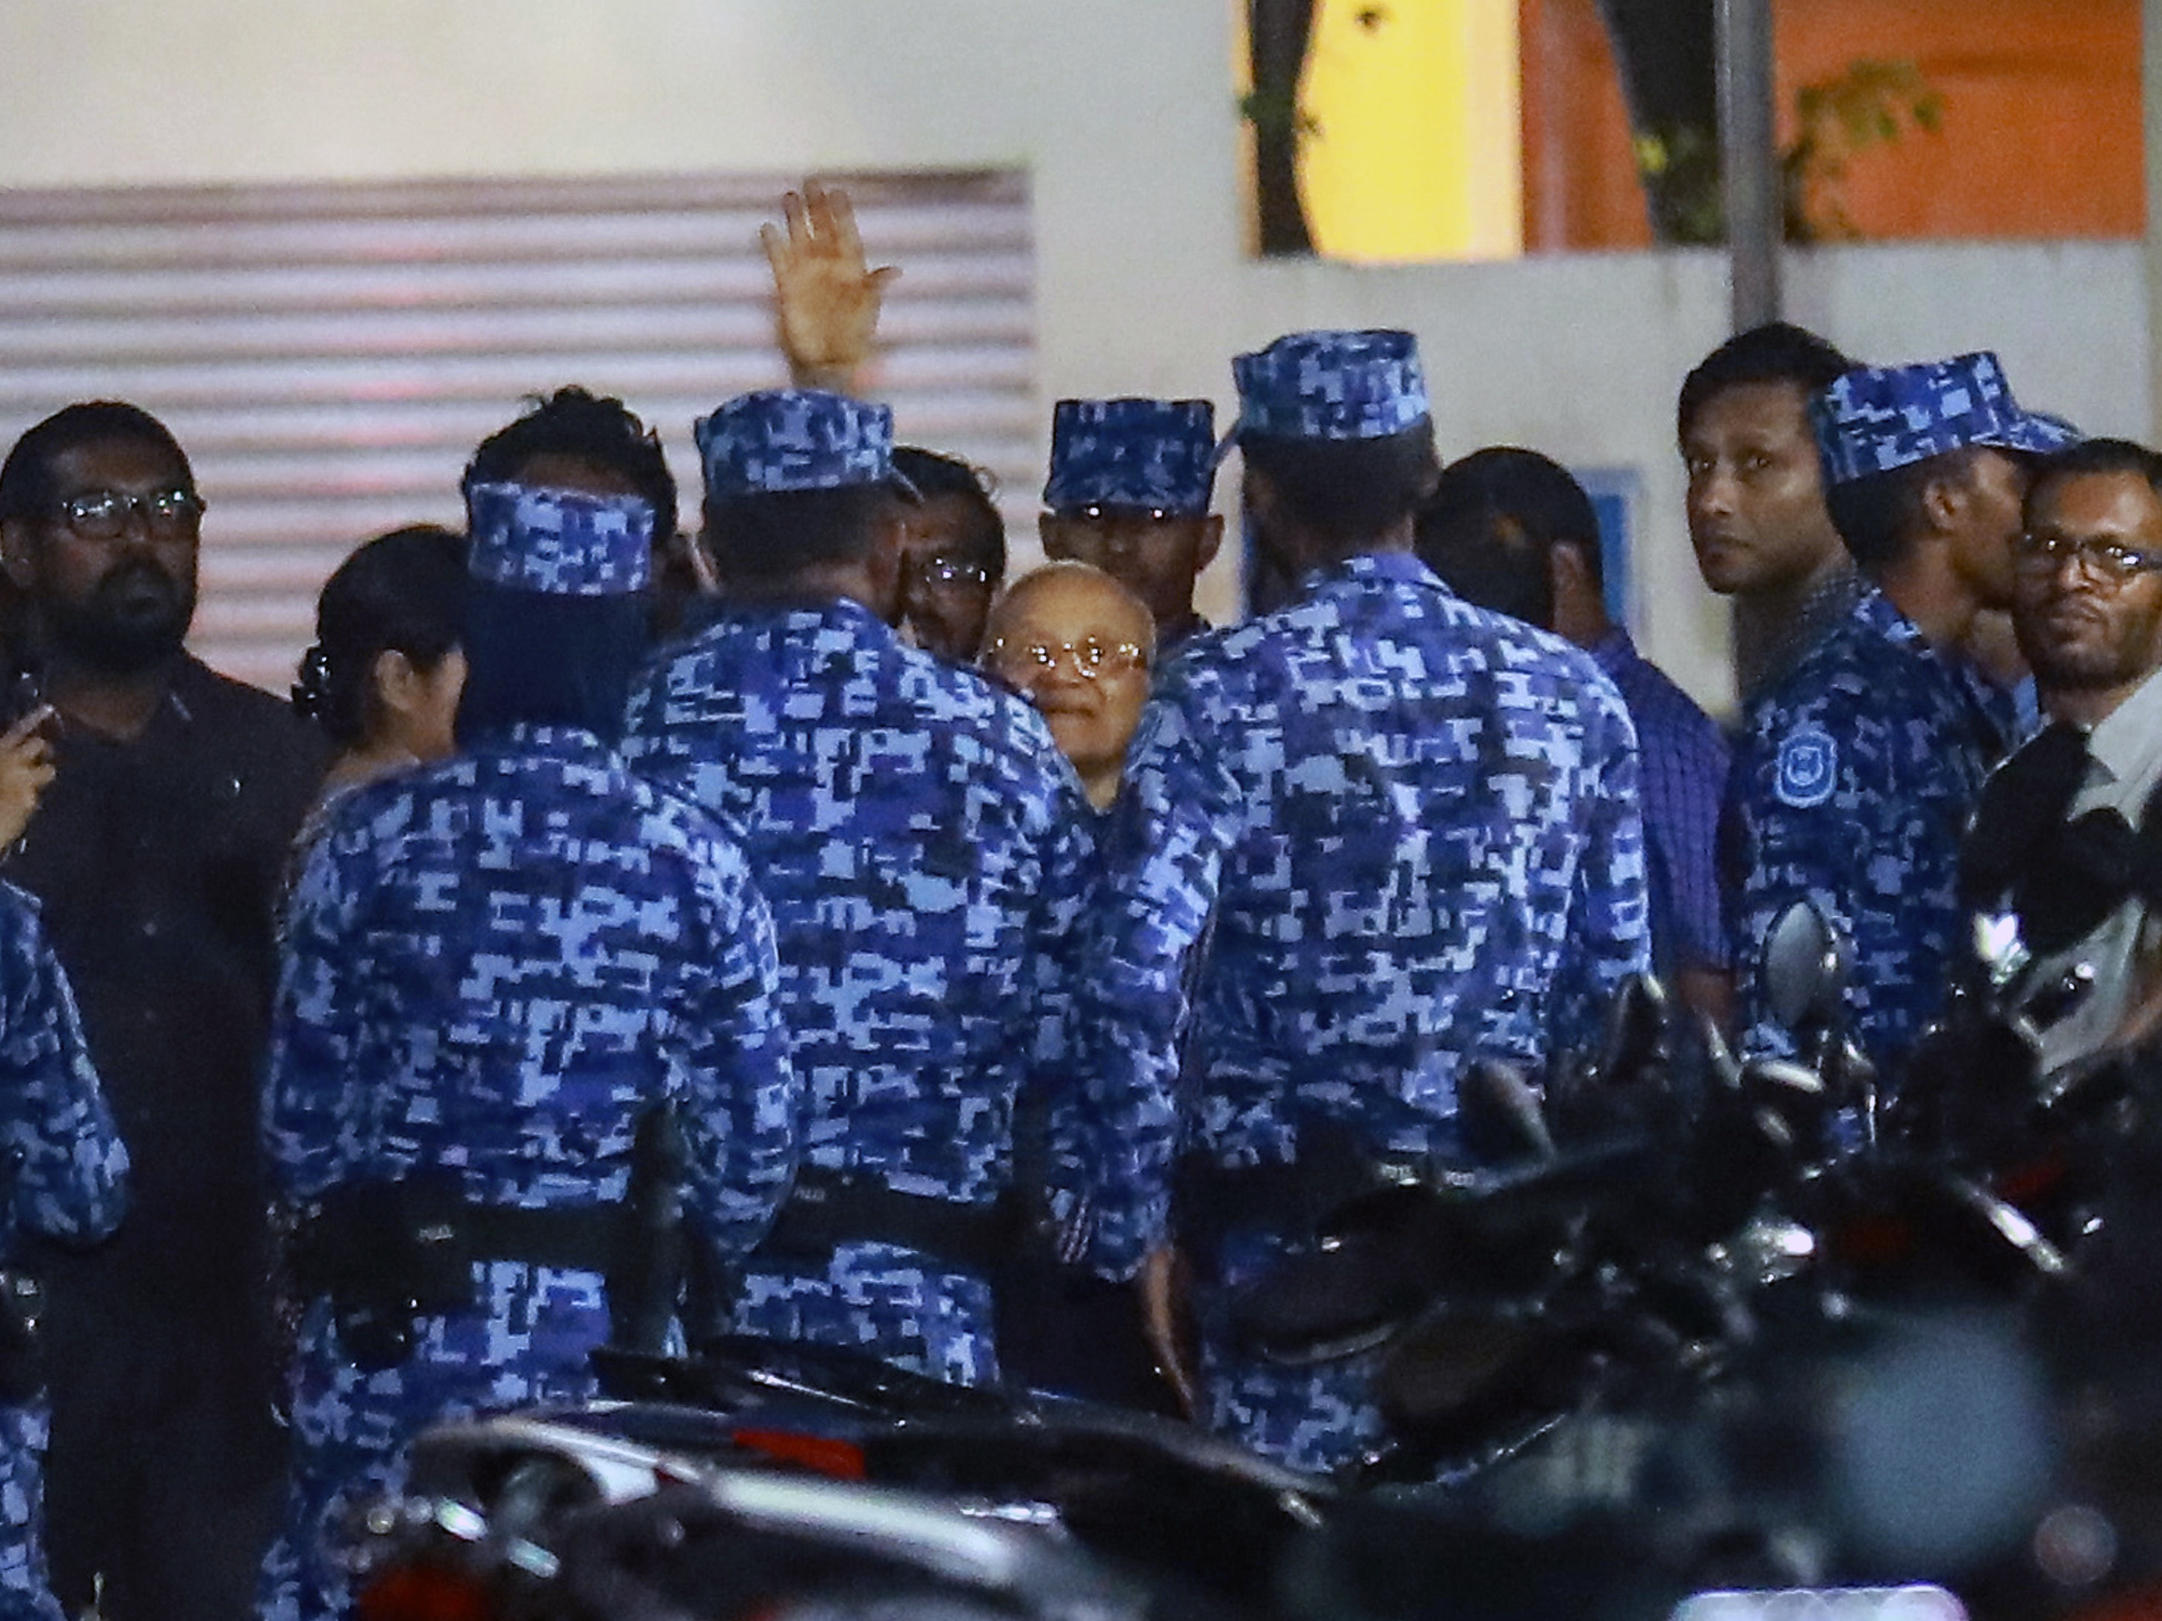 Supreme Court judges arrested amid political crisis in Maldives